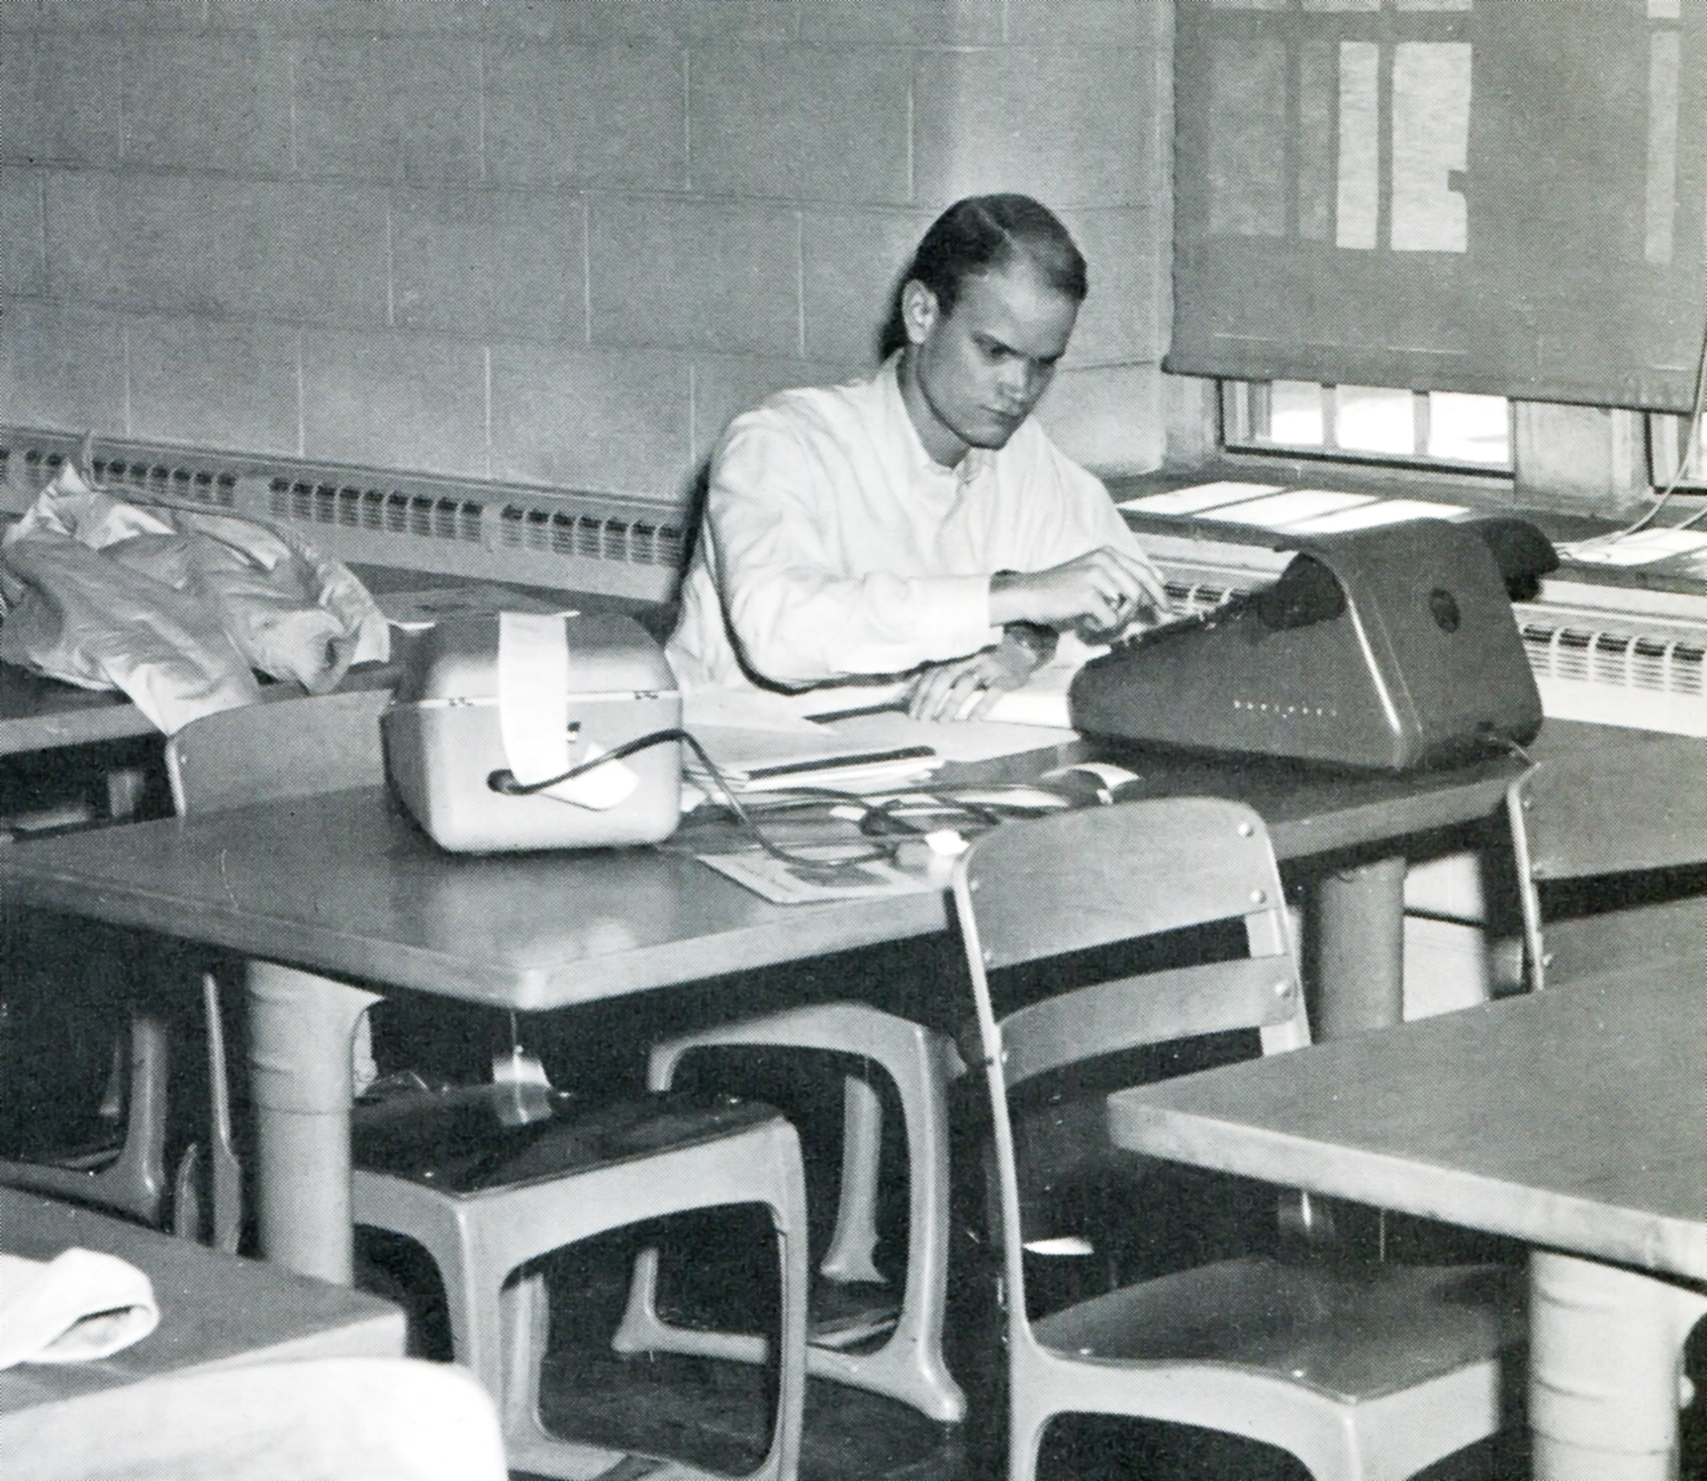 A business student at what was then Virginia Polytechnic Institute works on an assignment.